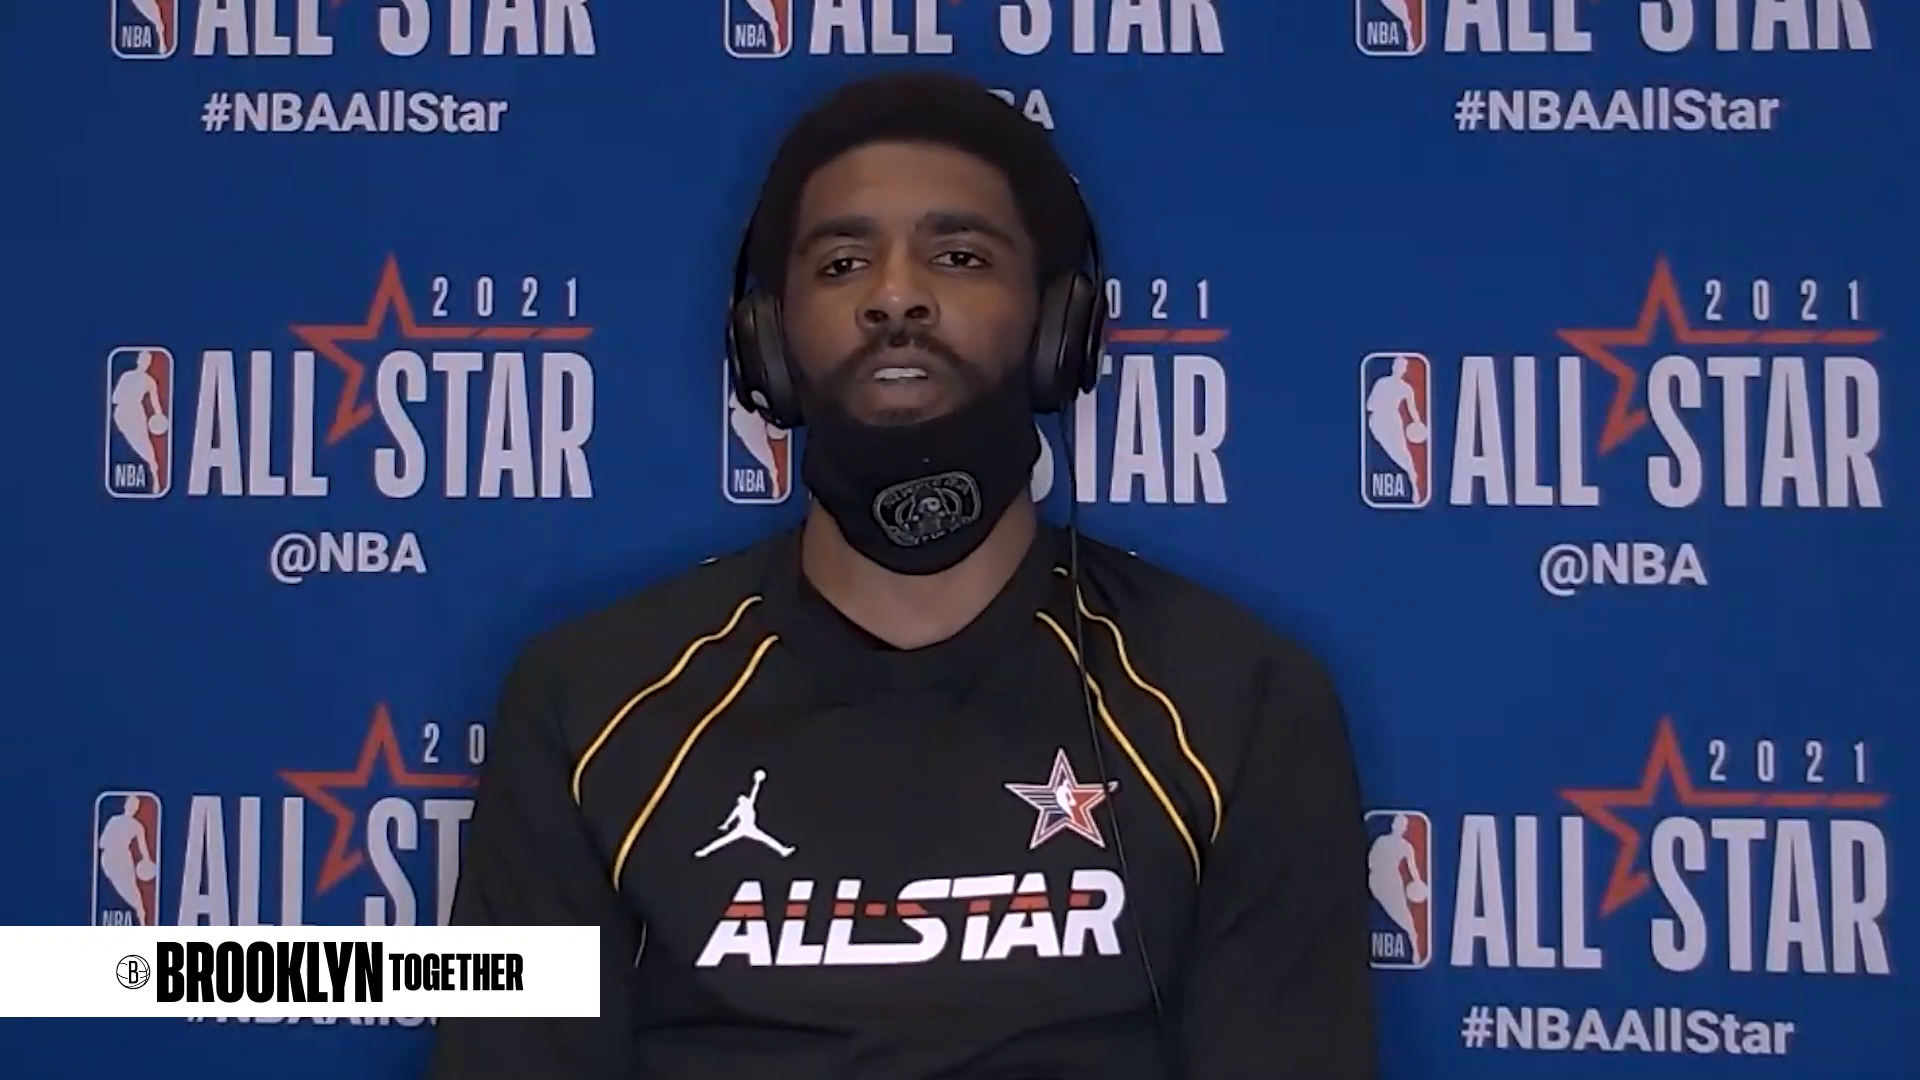 Kyrie Irving: 2021 NBA All-Star Postgame Media Session